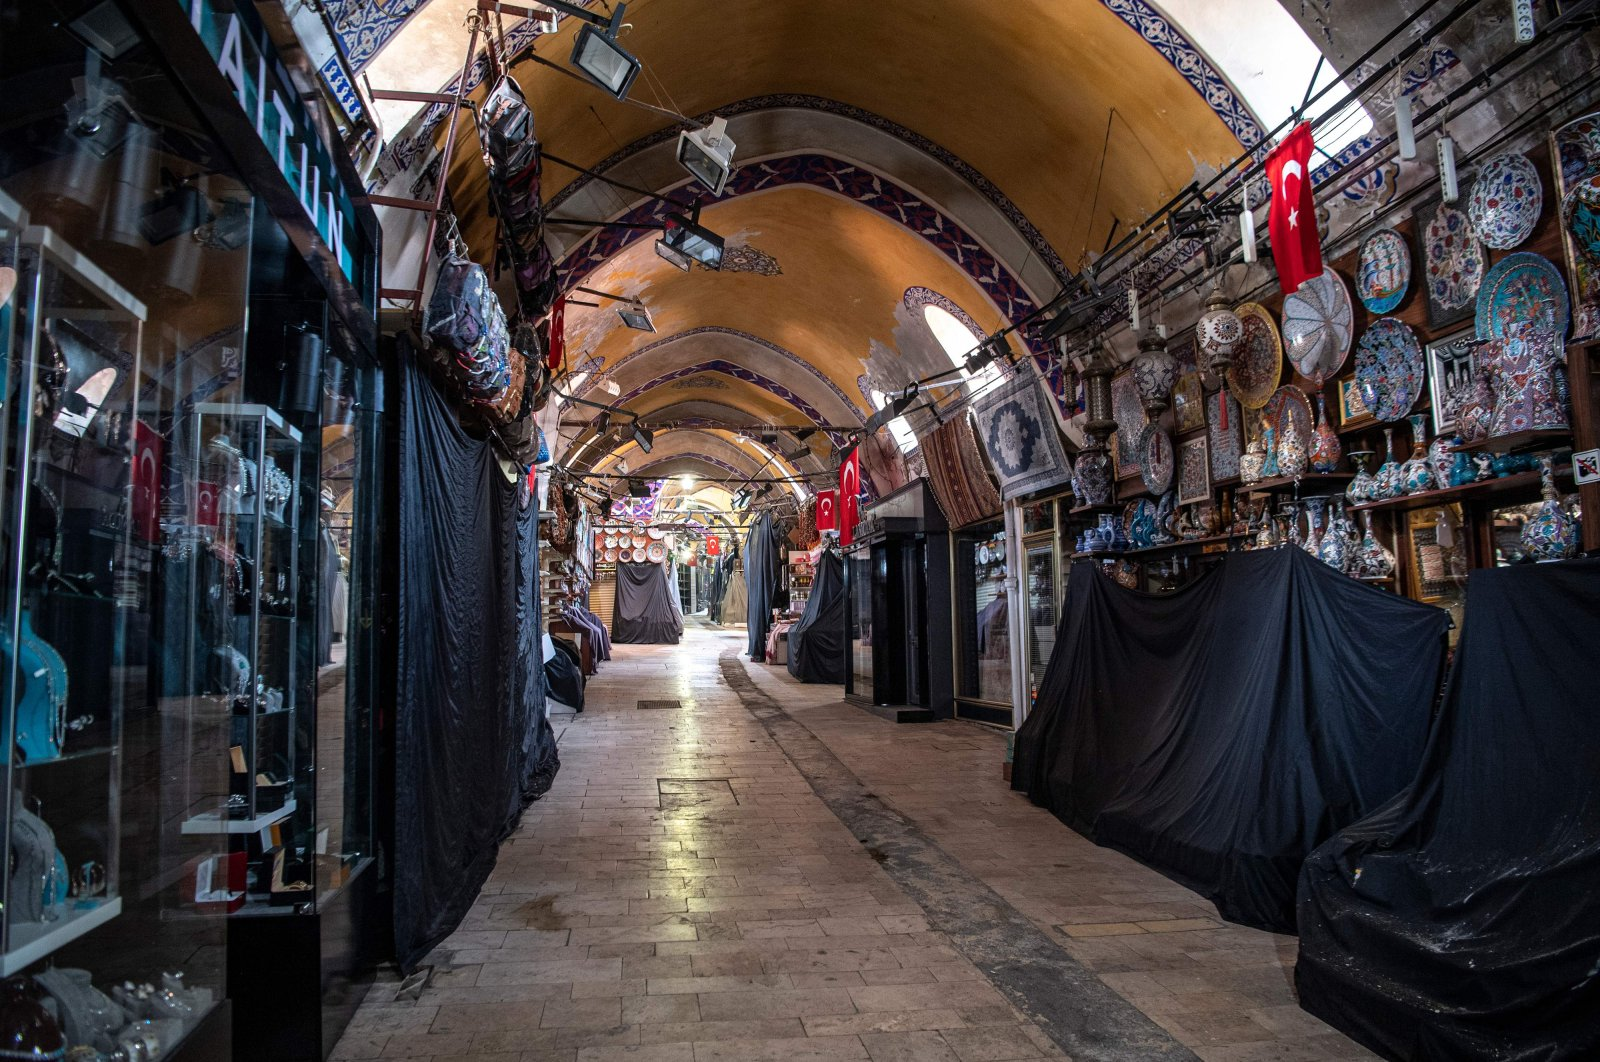 A deserted street of the iconic Grand Bazaar seen during the COVID-19 pandemic, in Istanbul, Turkey, May 20, 2020. (AFP Photo)